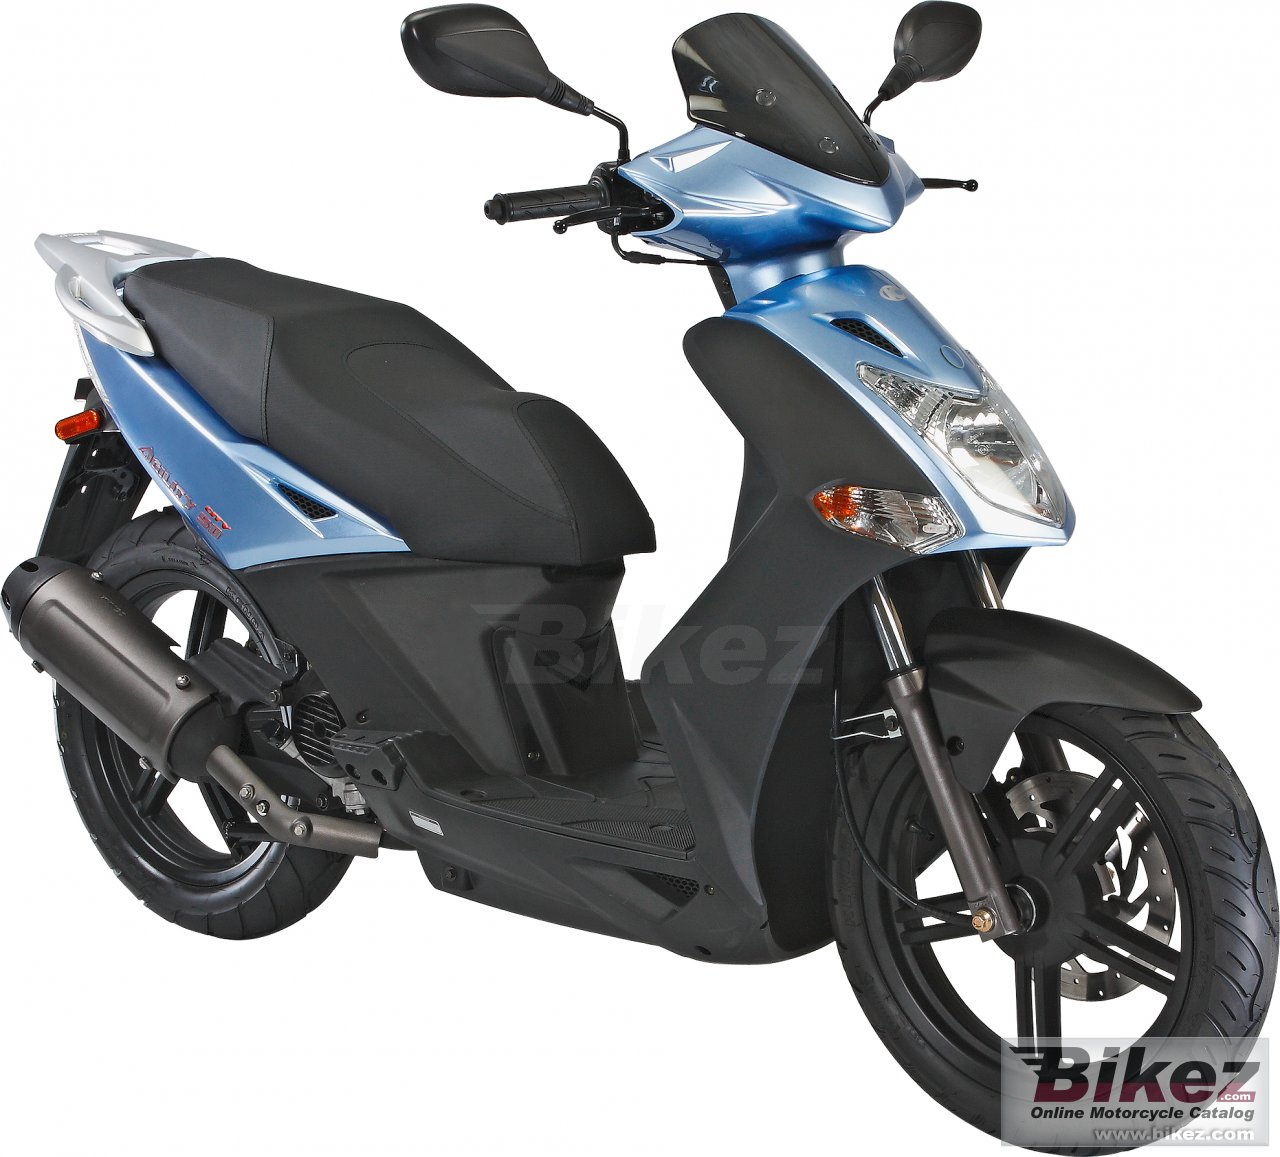 Big Kymco agility city 125 picture and wallpaper from Bikez.com